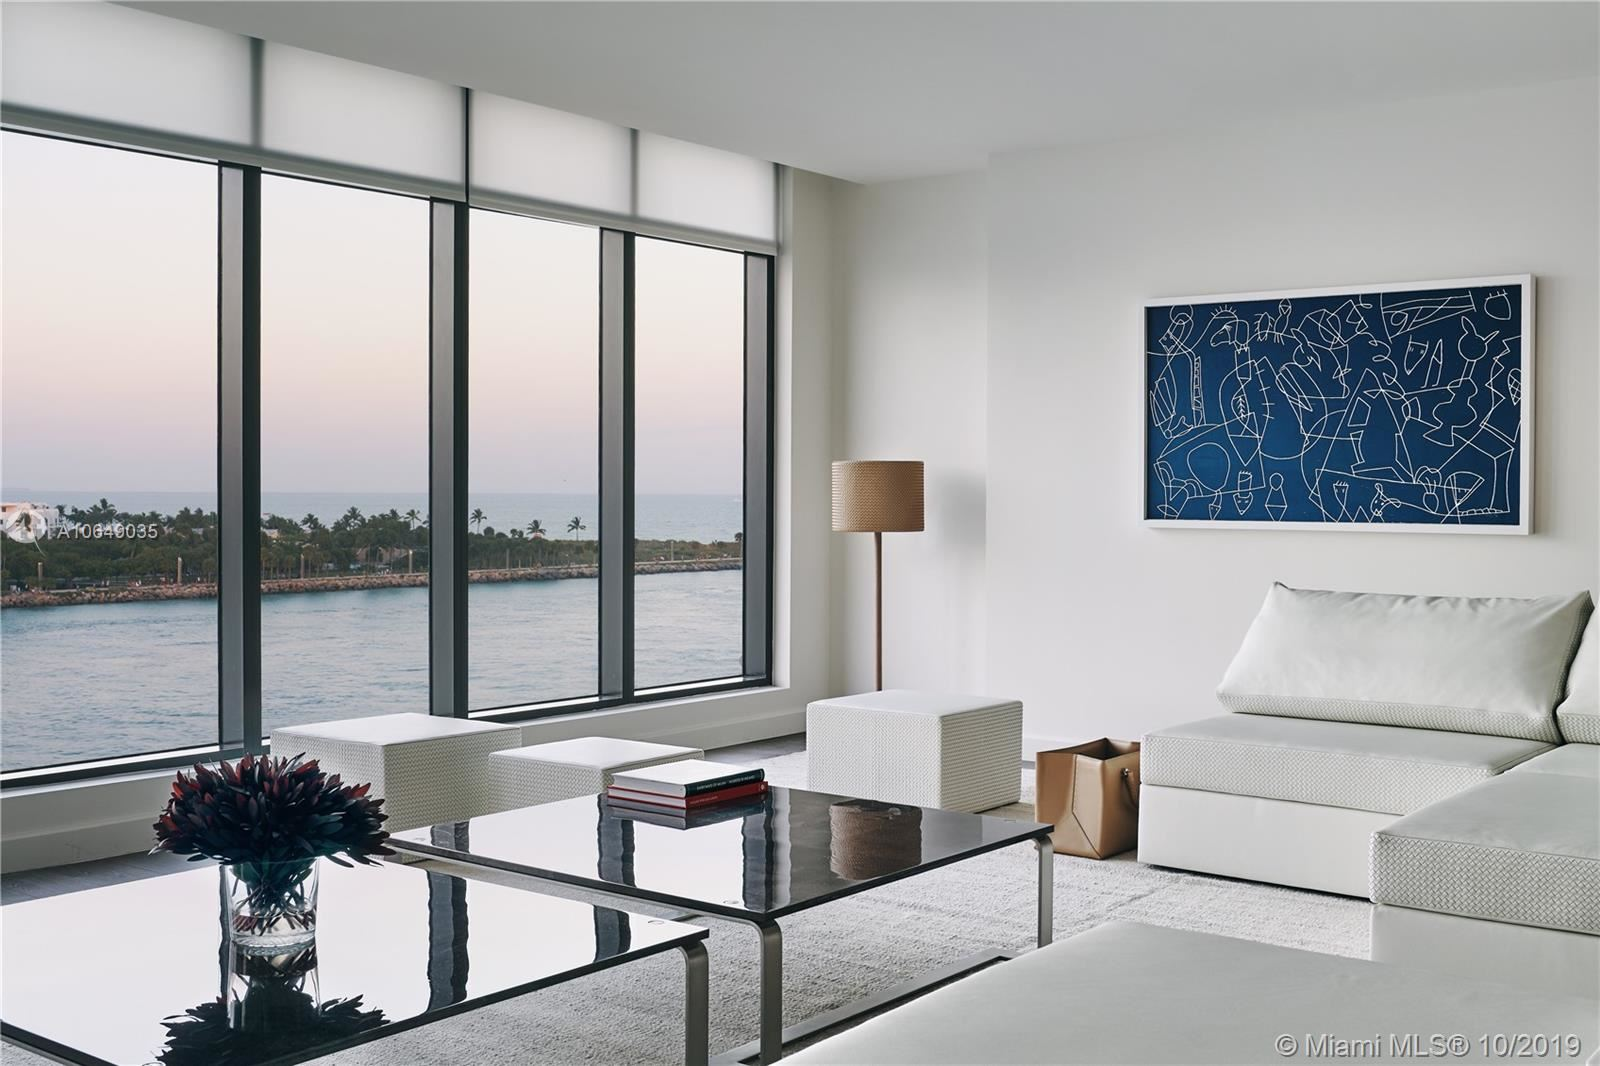 Photo 4 of Listing MLS a10649035 in 7073 Fisher Island Dr #7073 Miami Beach FL 33139